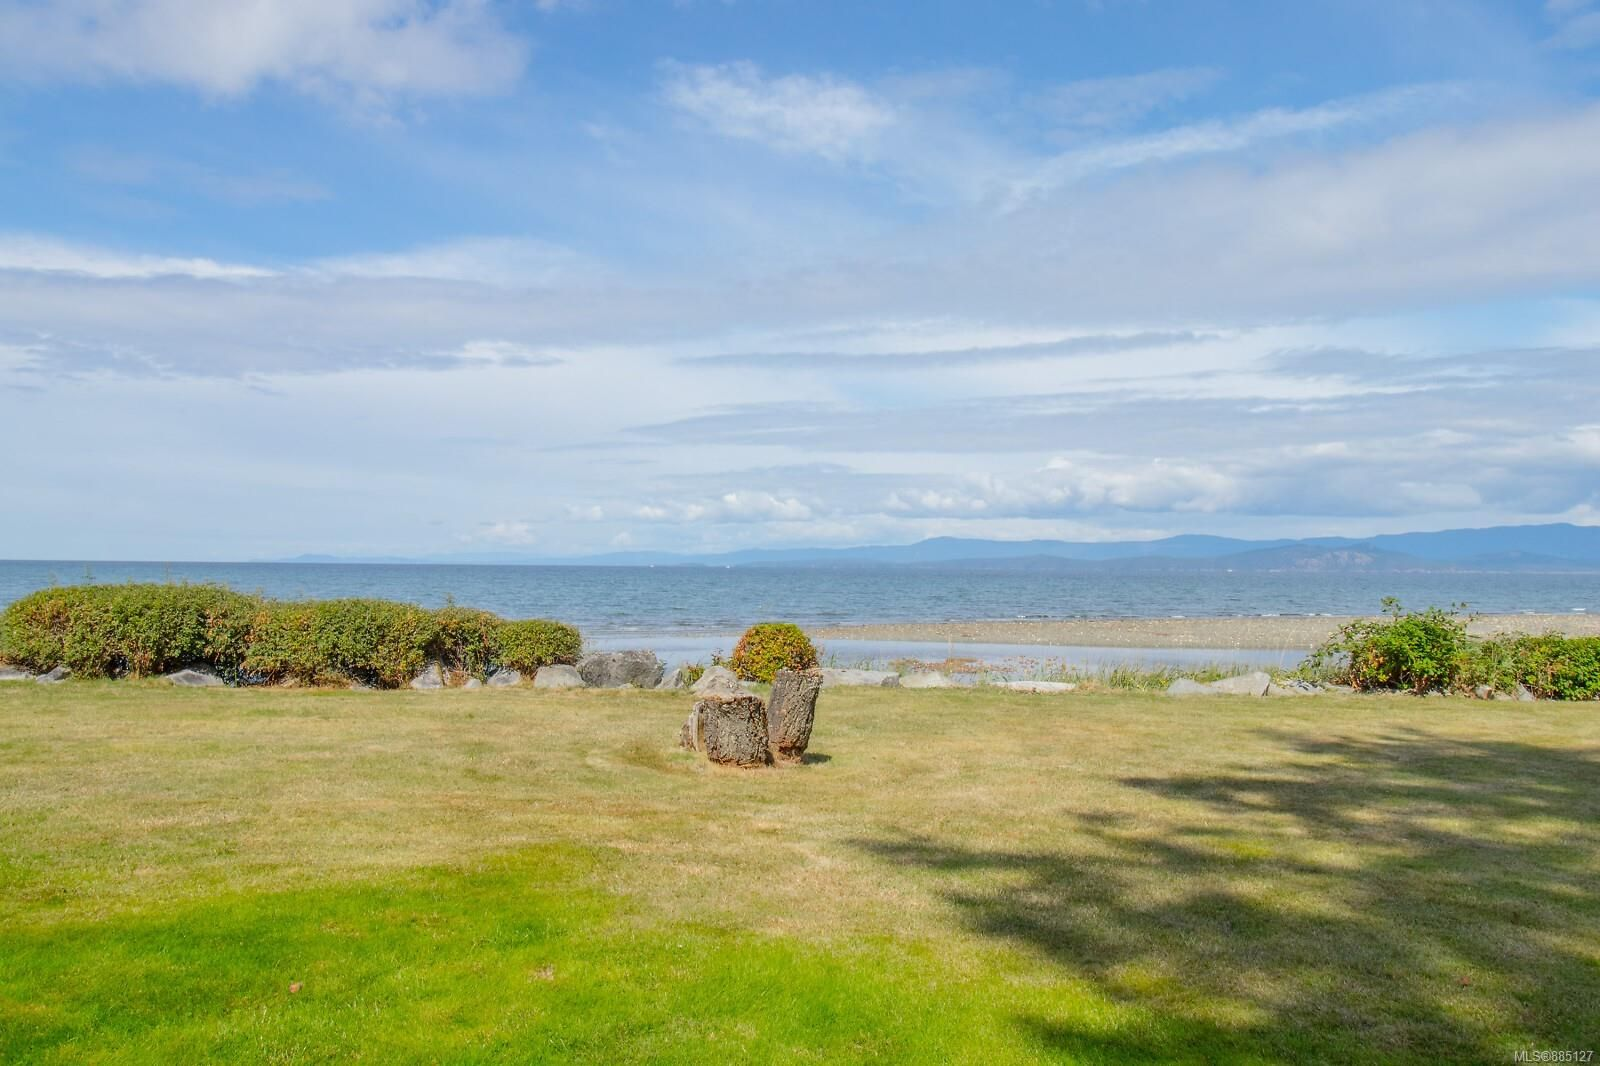 Photo 50: Photos: 26 529 Johnstone Rd in : PQ French Creek Row/Townhouse for sale (Parksville/Qualicum)  : MLS®# 885127